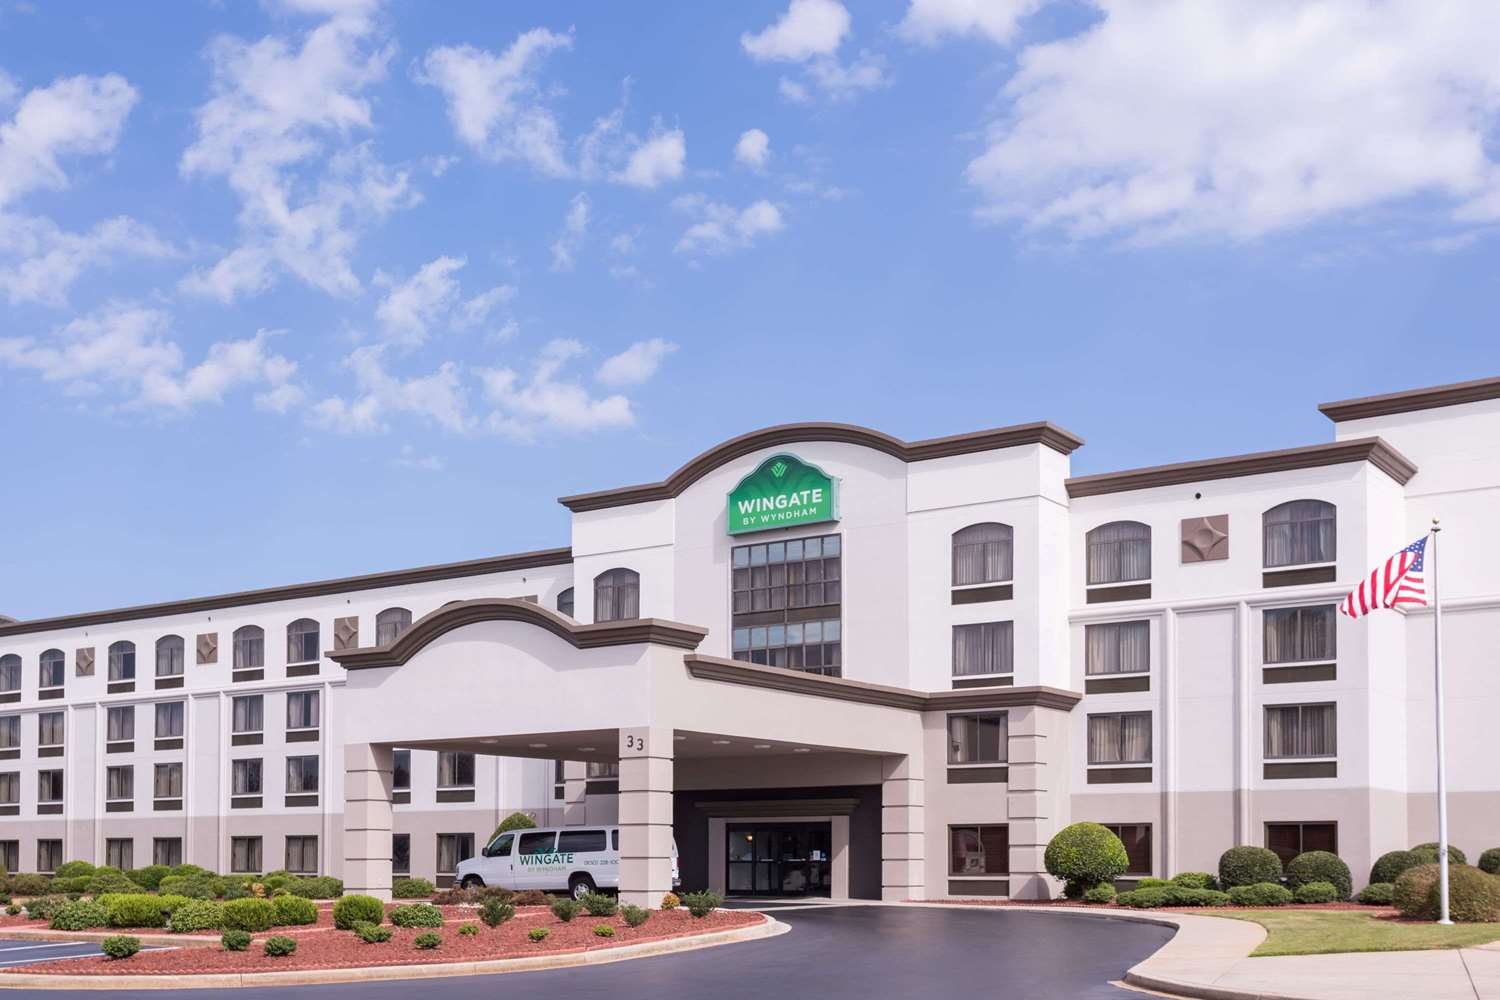 Exterior view - Wingate by Wyndham Hotel Airport Greenville